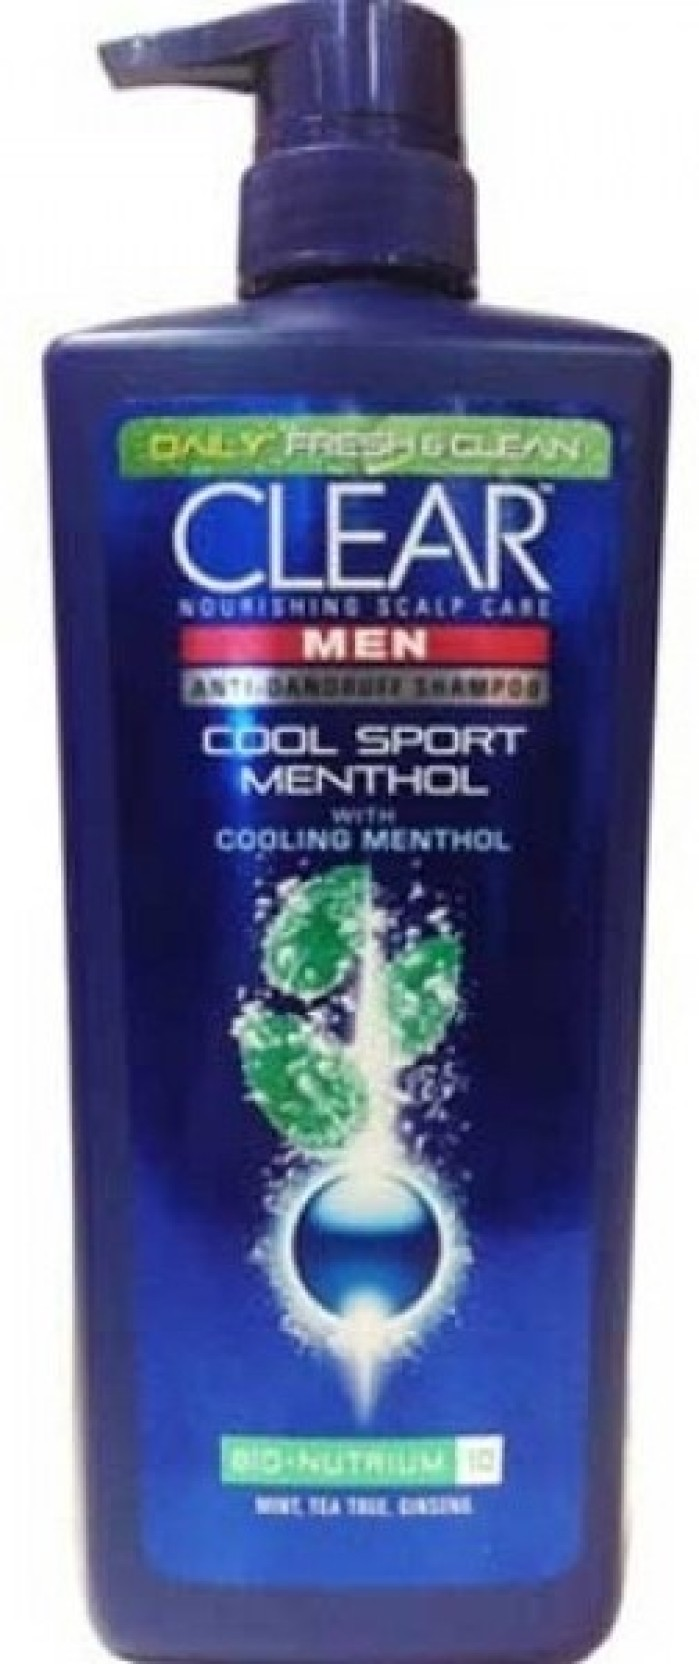 Clear Men Cool Sport Menthol Anti Dandruff Nourishing Shampoo New Complete Soft Care 170ml Share